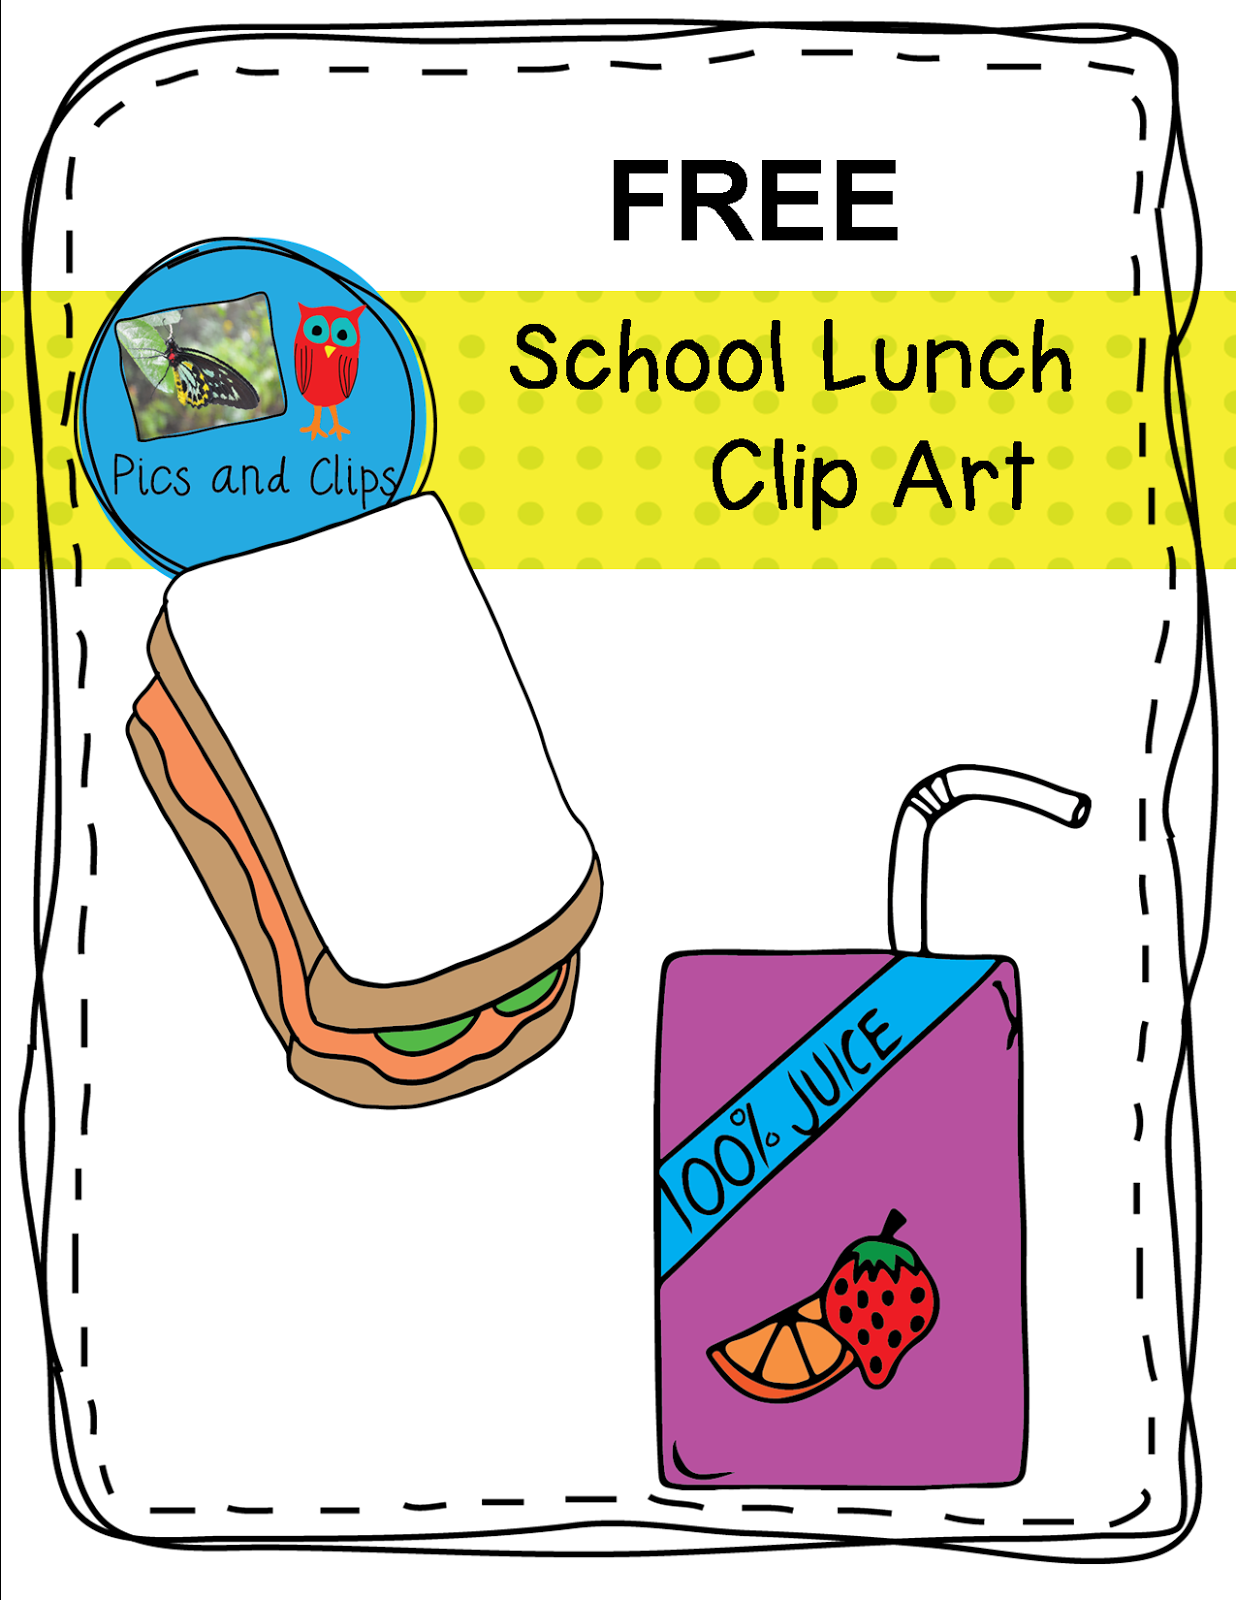 free school lunch clip art simply learning centers school lunch rh pinterest com school lunchroom clipart